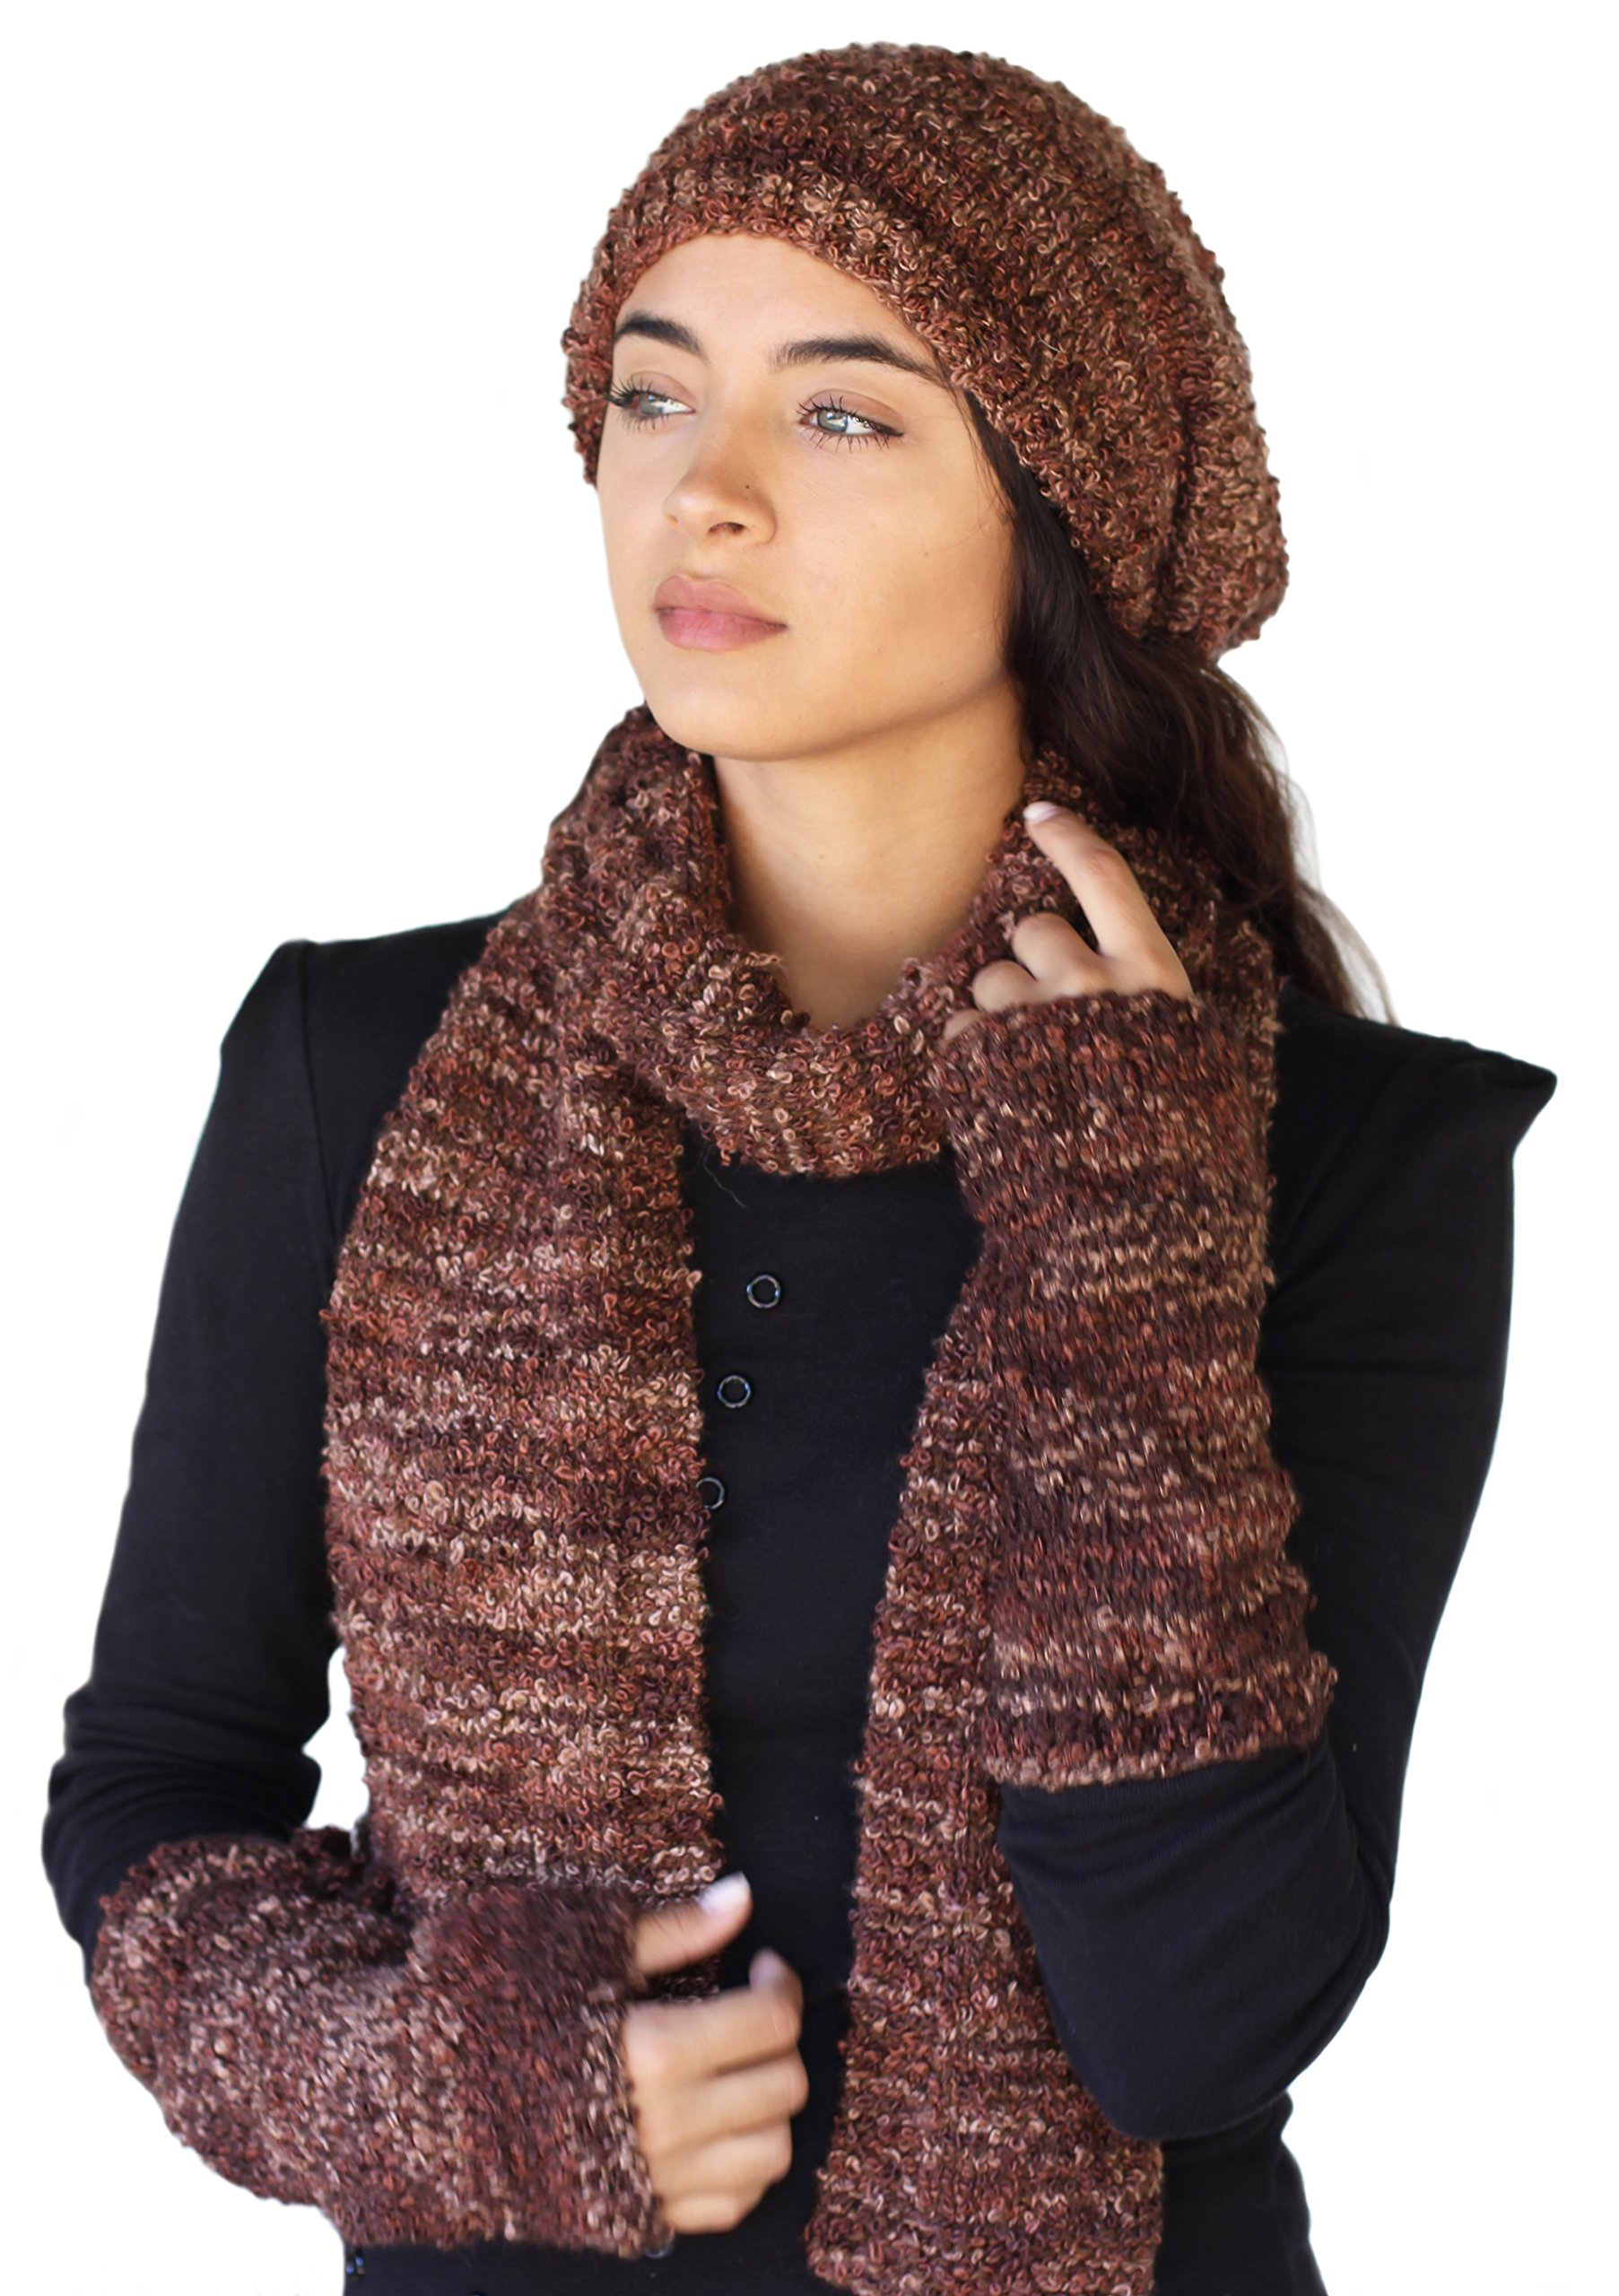 CLEARANCE - Soft ALPACA Complete Winter Three Piece Set - Marble Chocolate Cake by BARBERY Alpaca Accessories